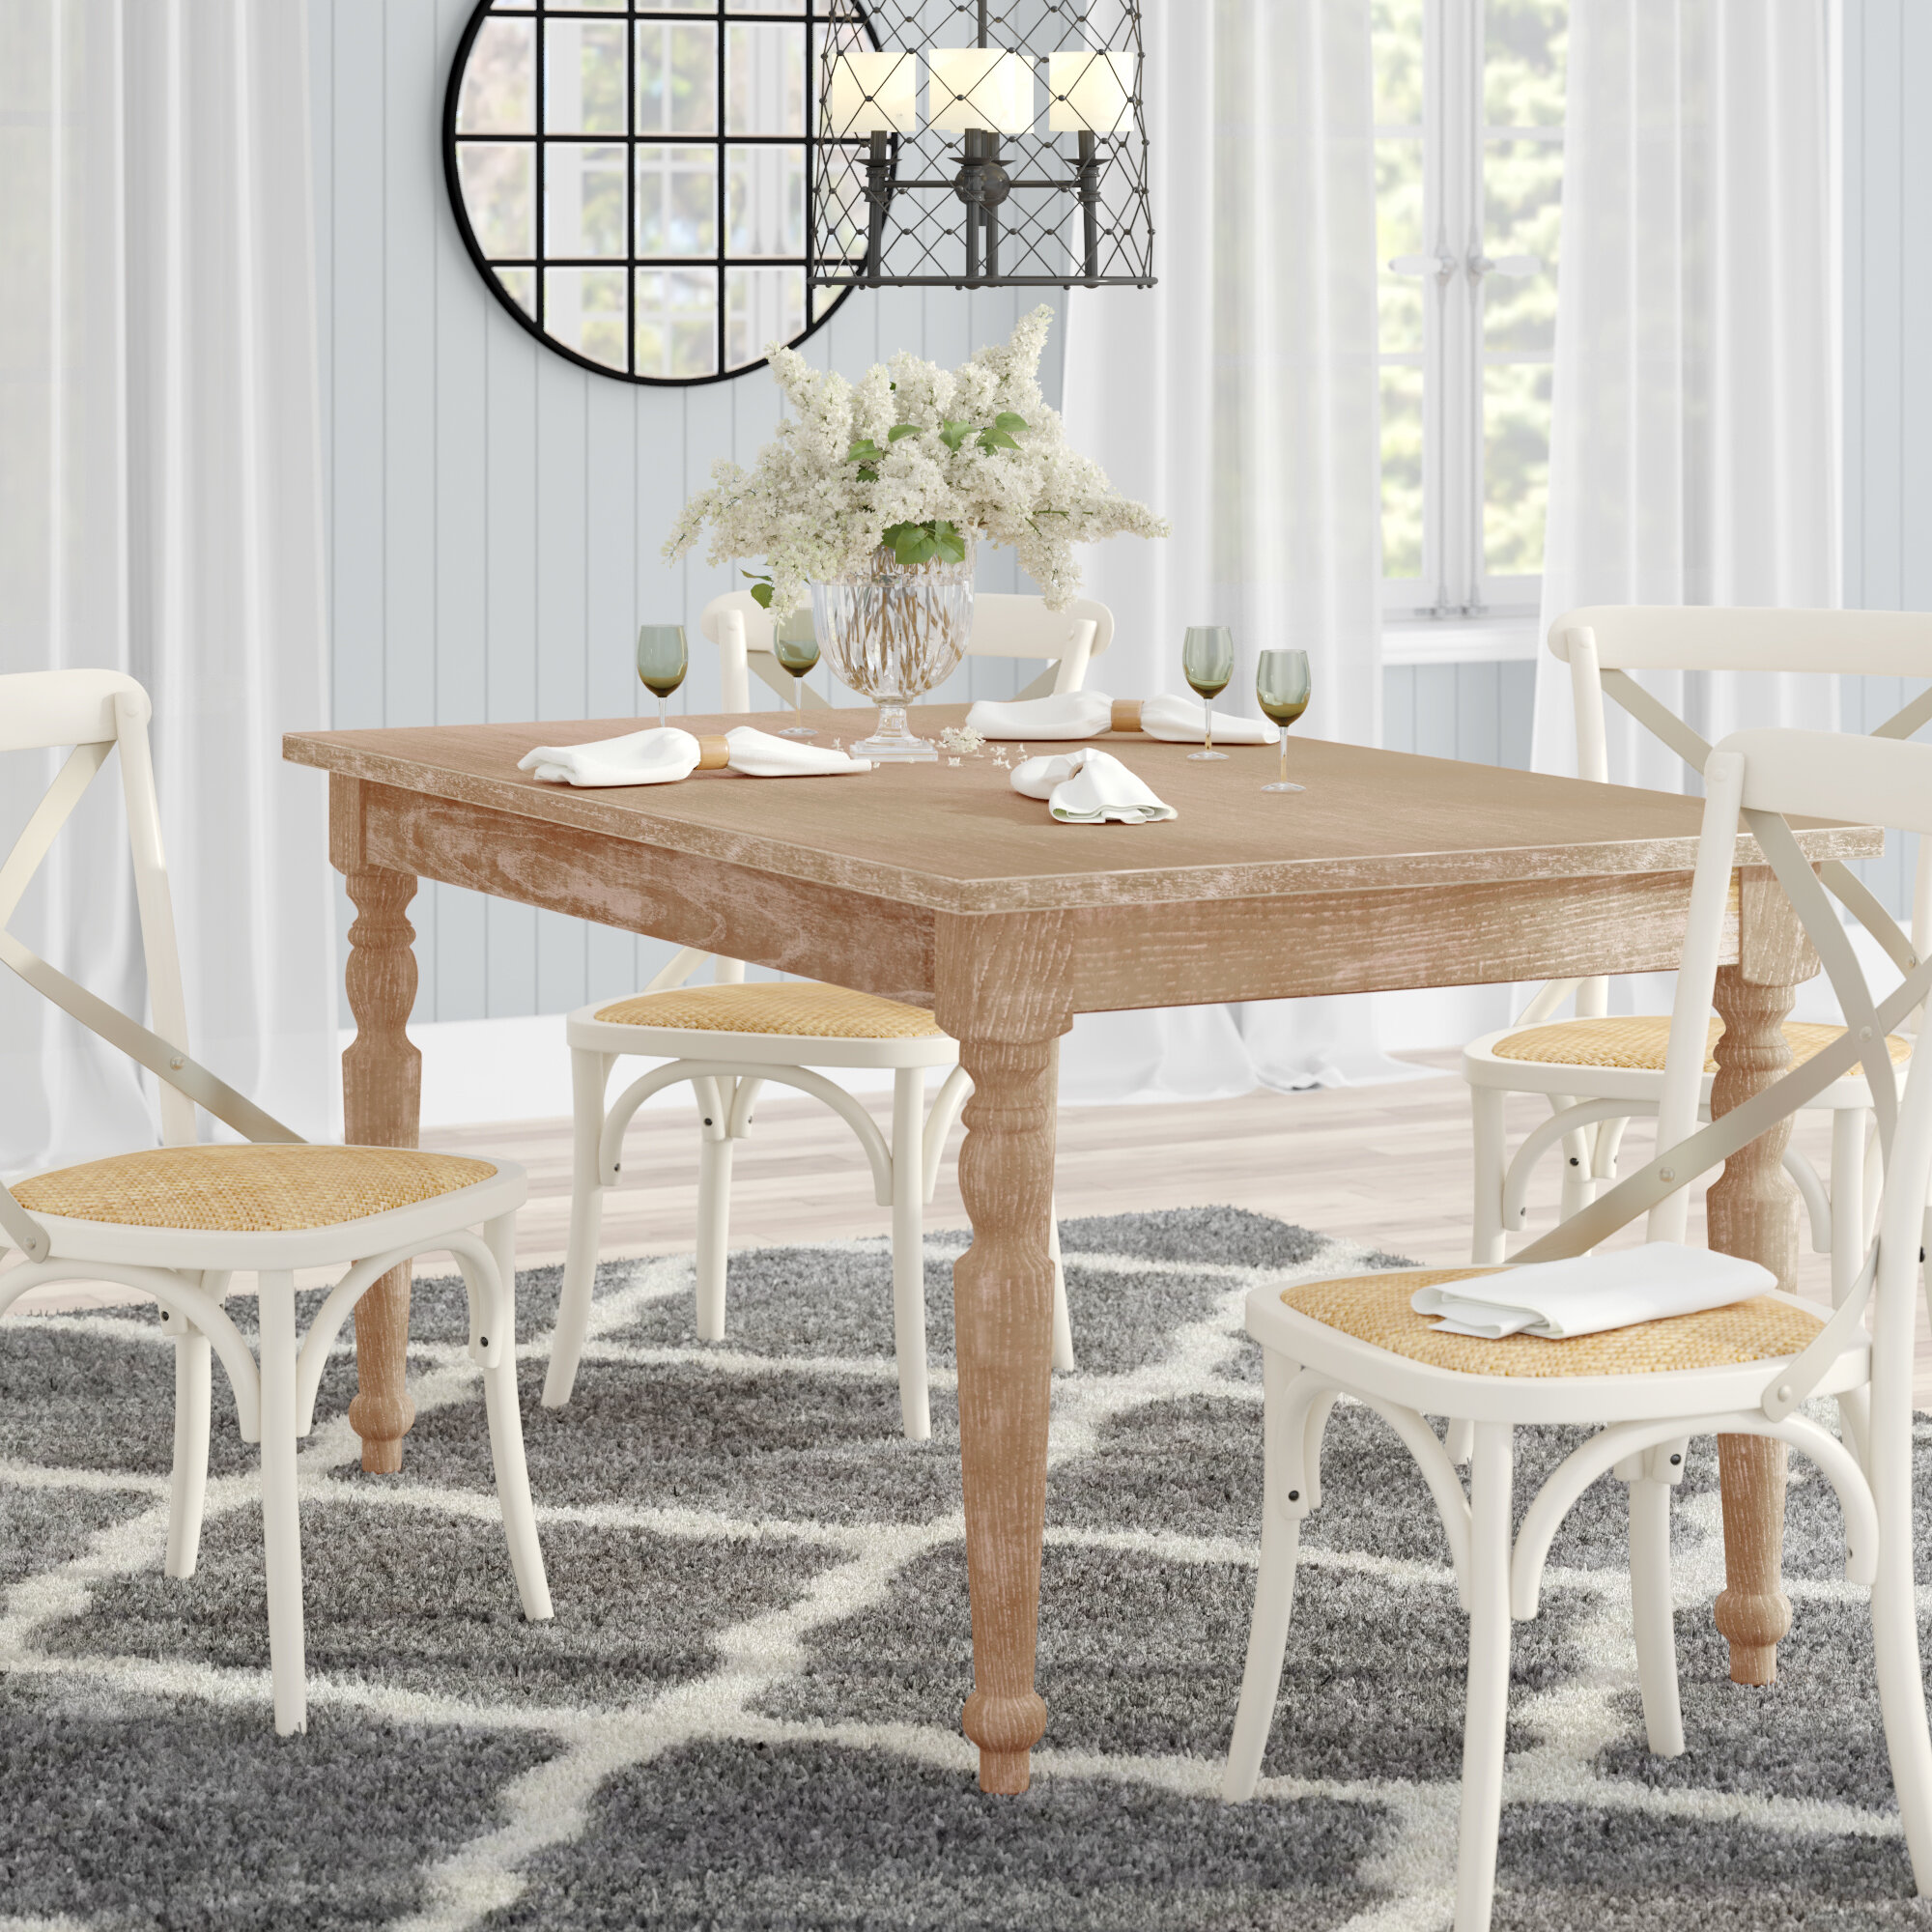 Distressed Finish Rustic Farmhouse Kitchen Dining Tables You Ll Love In 2021 Wayfair